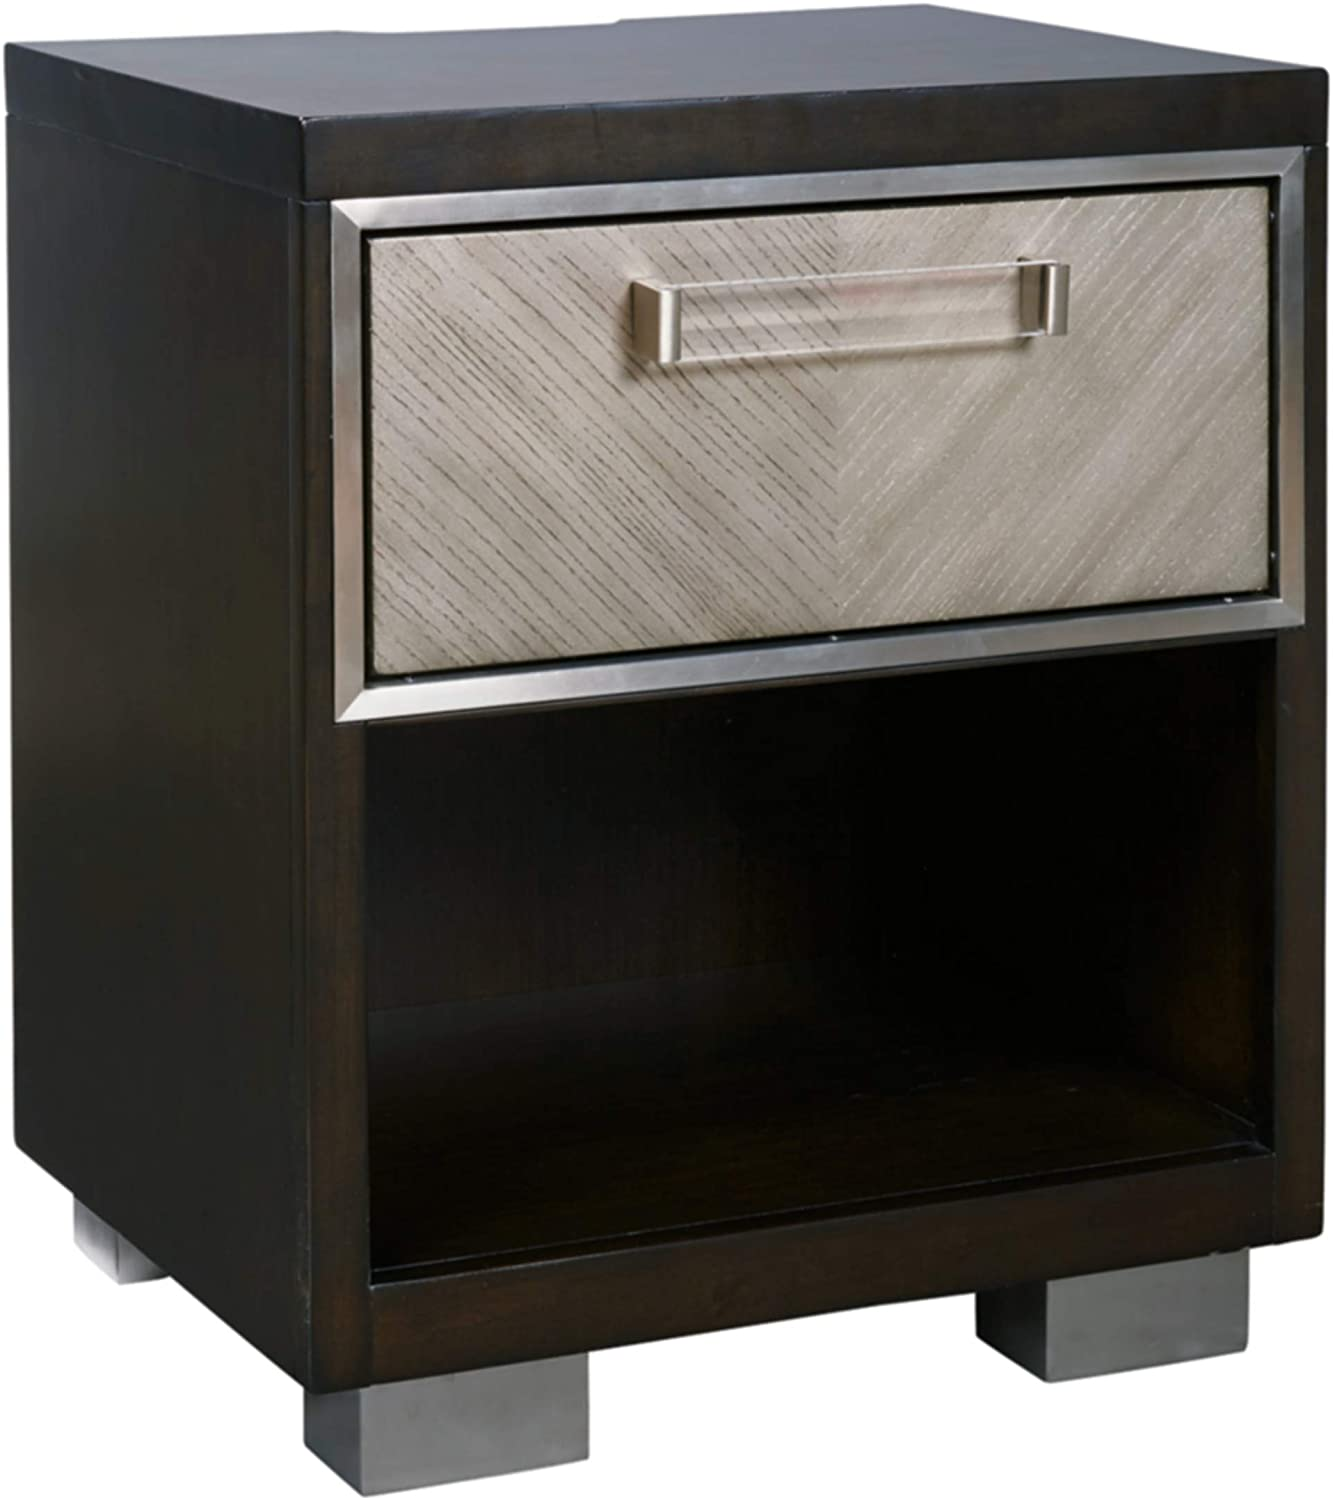 Signature Design by Ashley SEAL In a popularity limited product Maretto Stand Drawer Two-T One Night